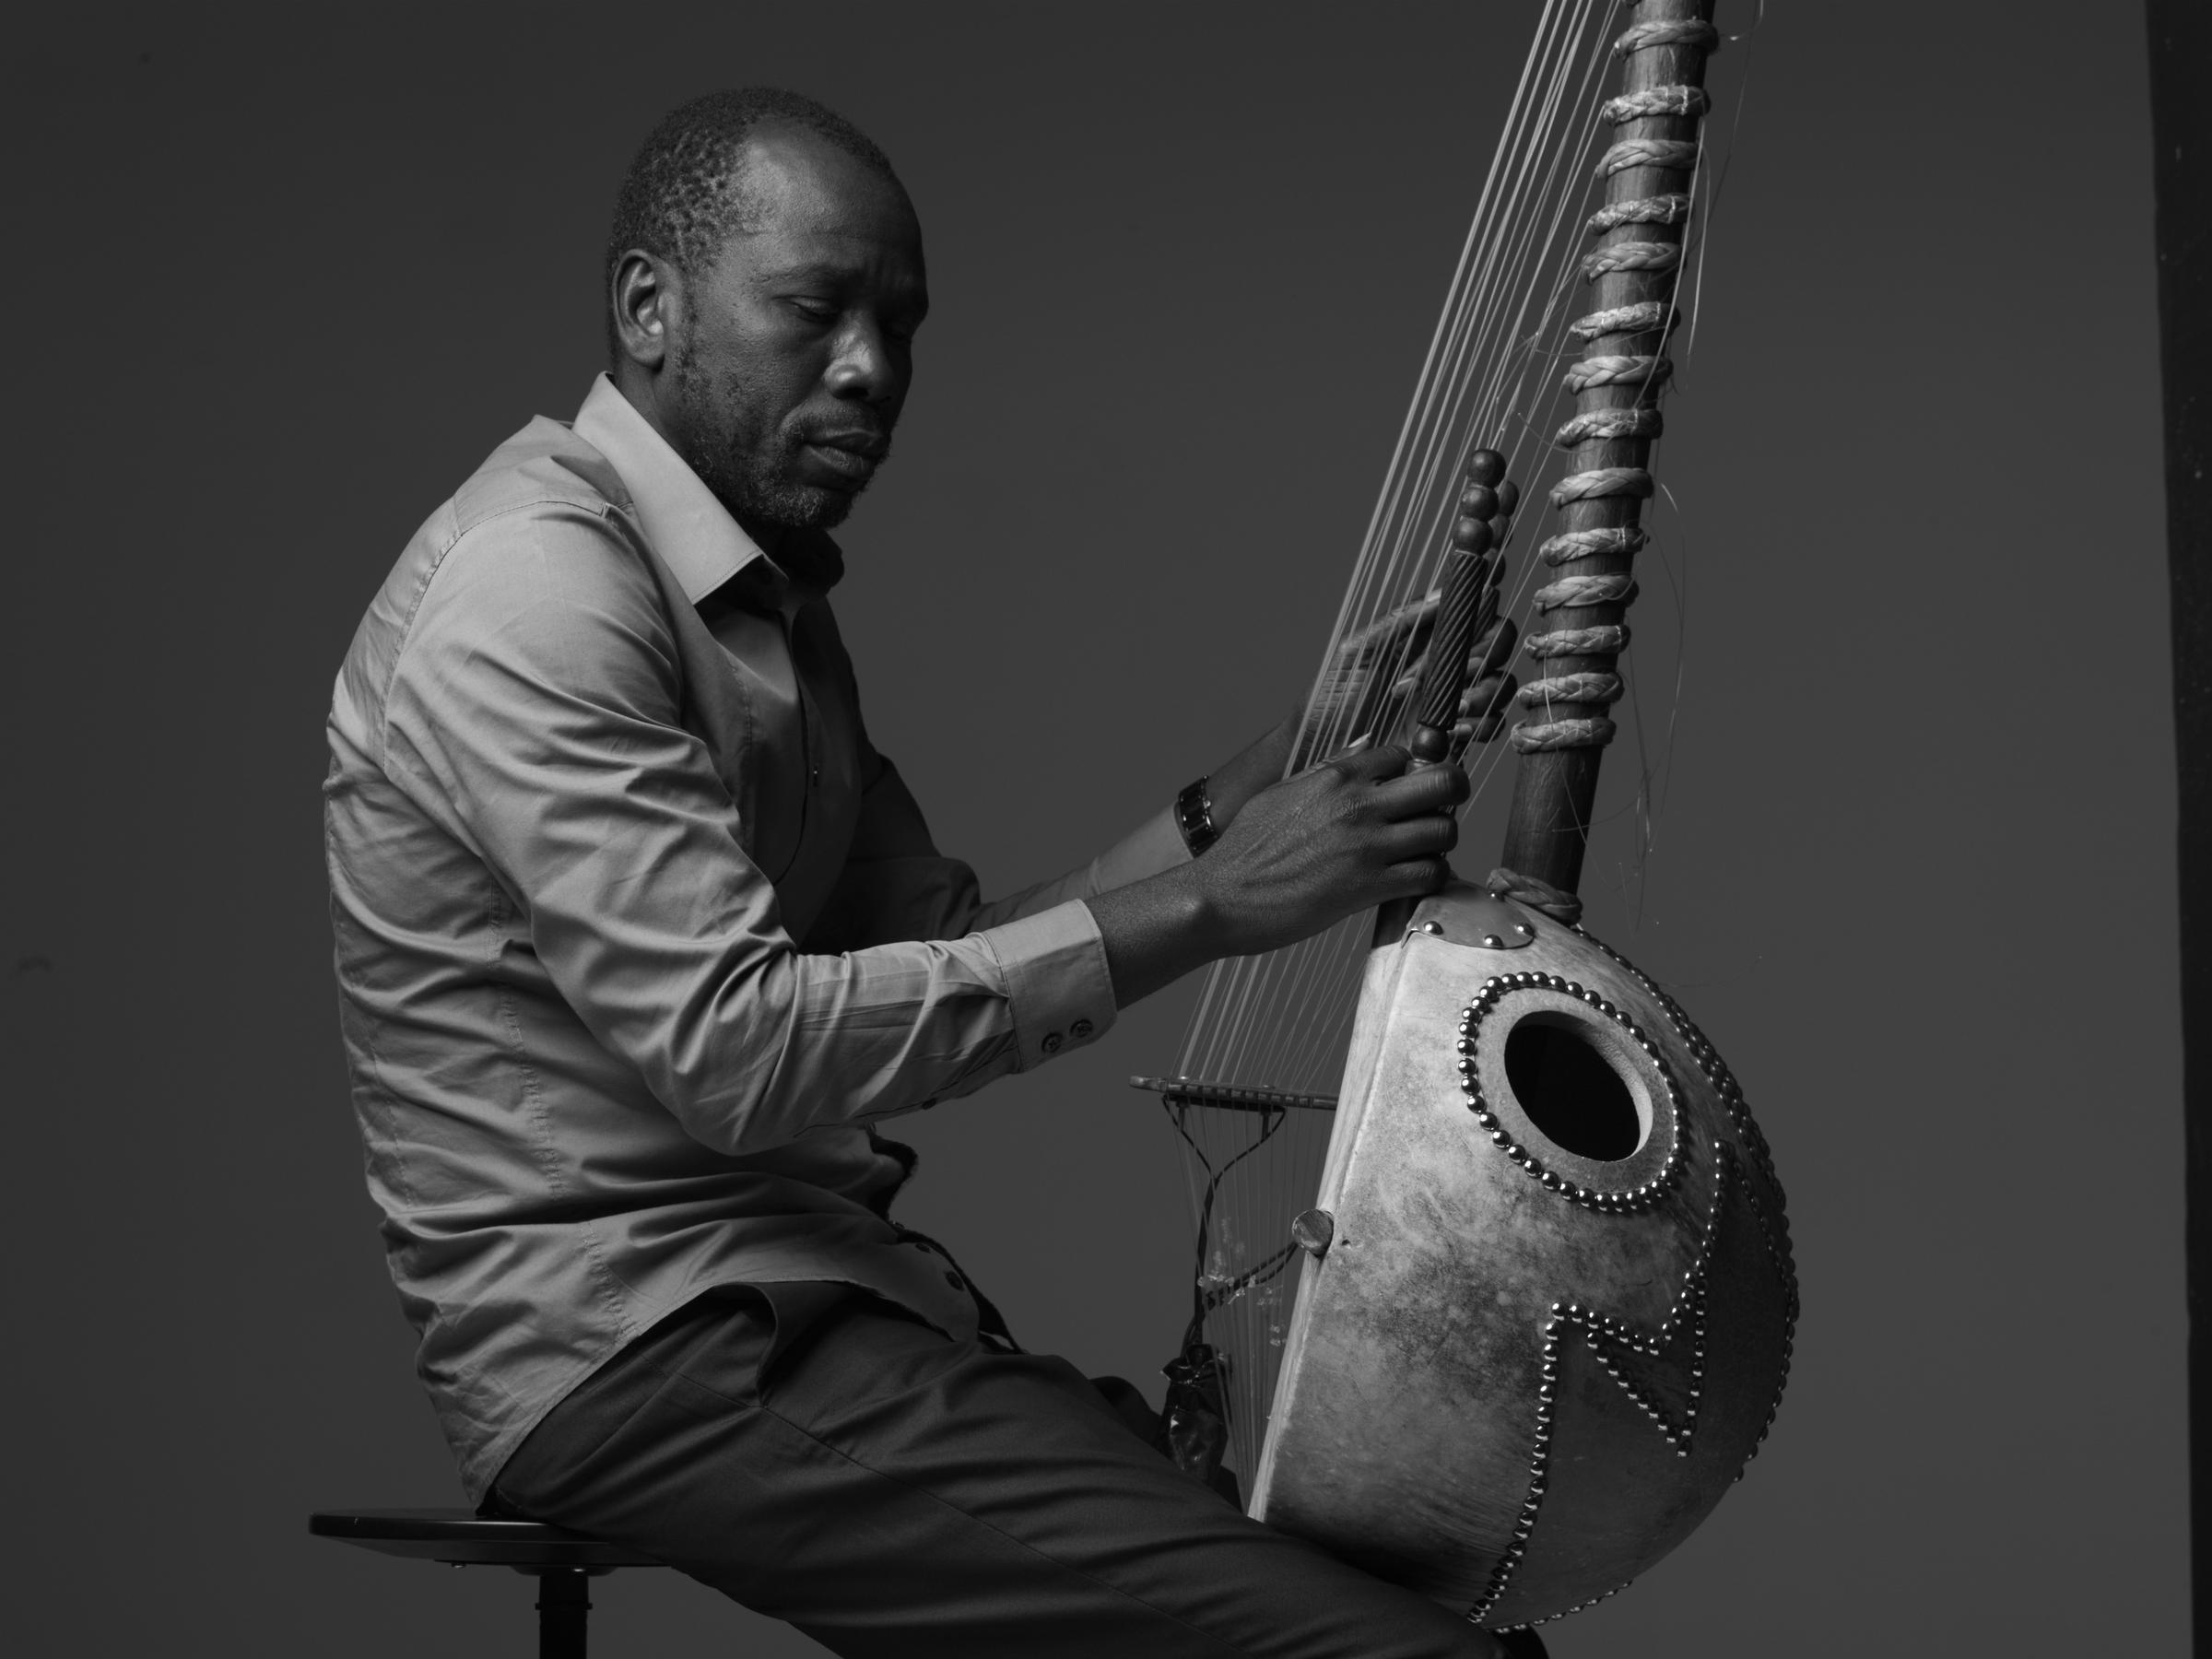 Prominent Malian Musician Alleges That TSA Destroyed His Instrument